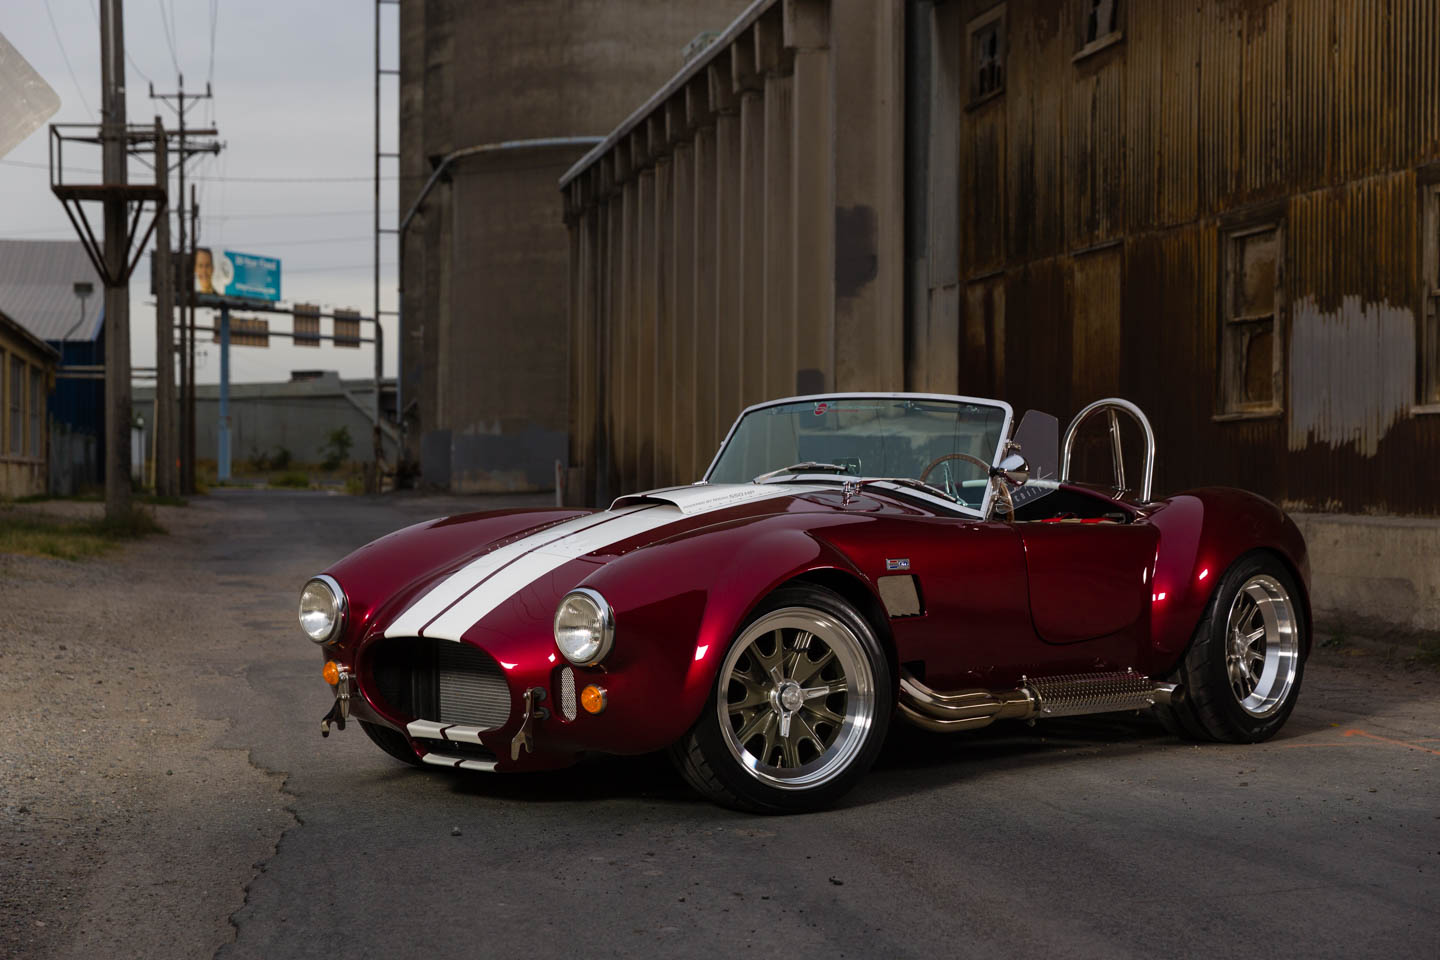 Candy red Shelby Cobra in all its glory